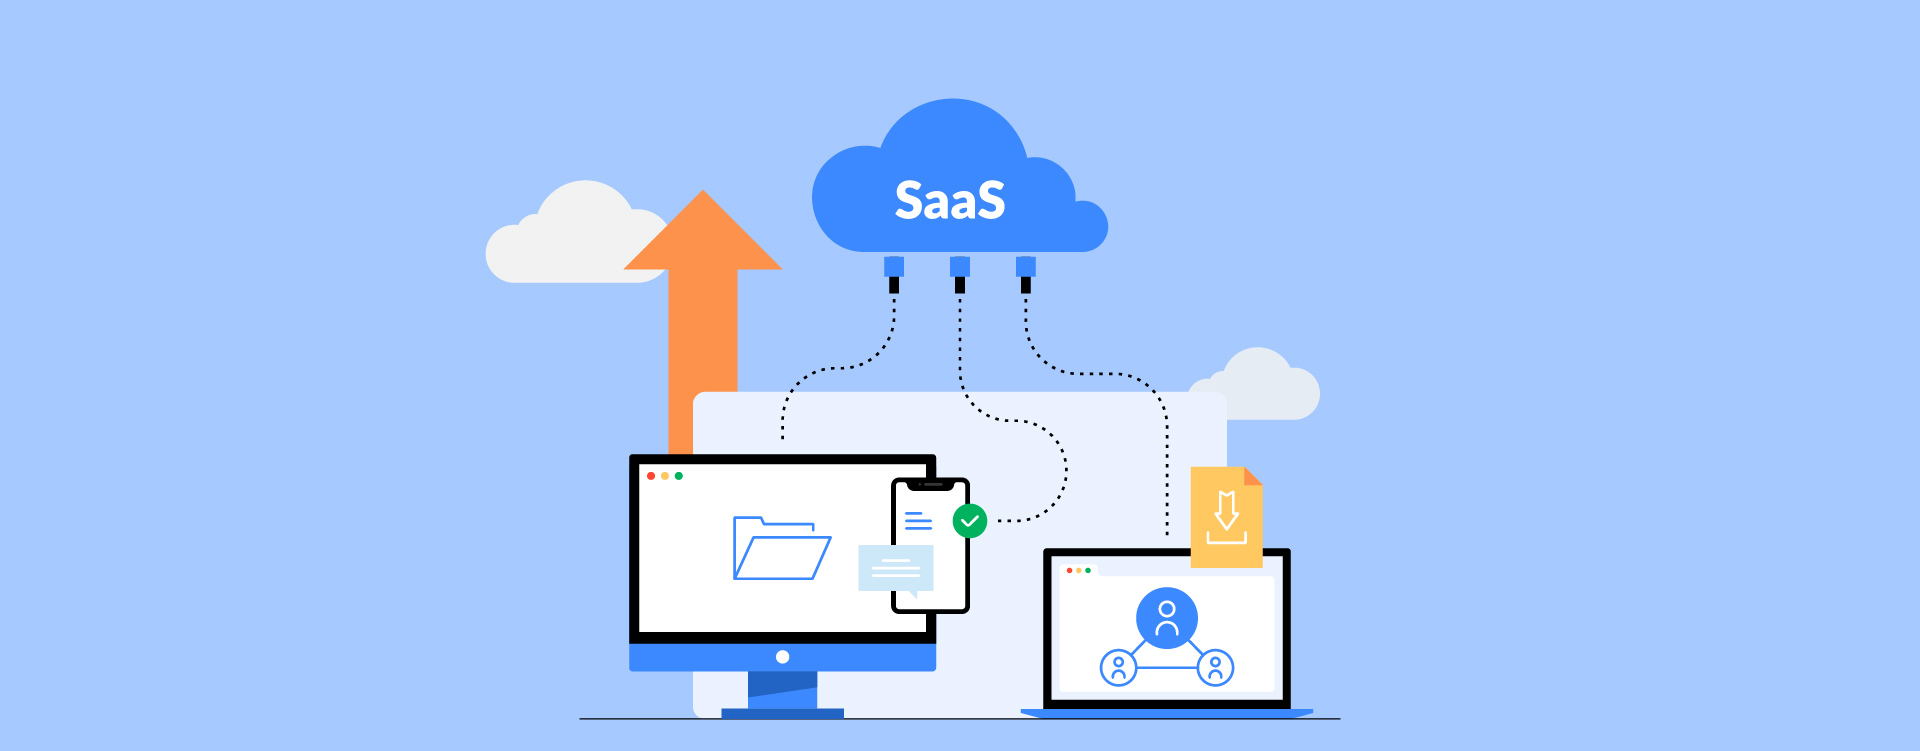 India's SaaS Industry Could Reach $1 Trillion in Value